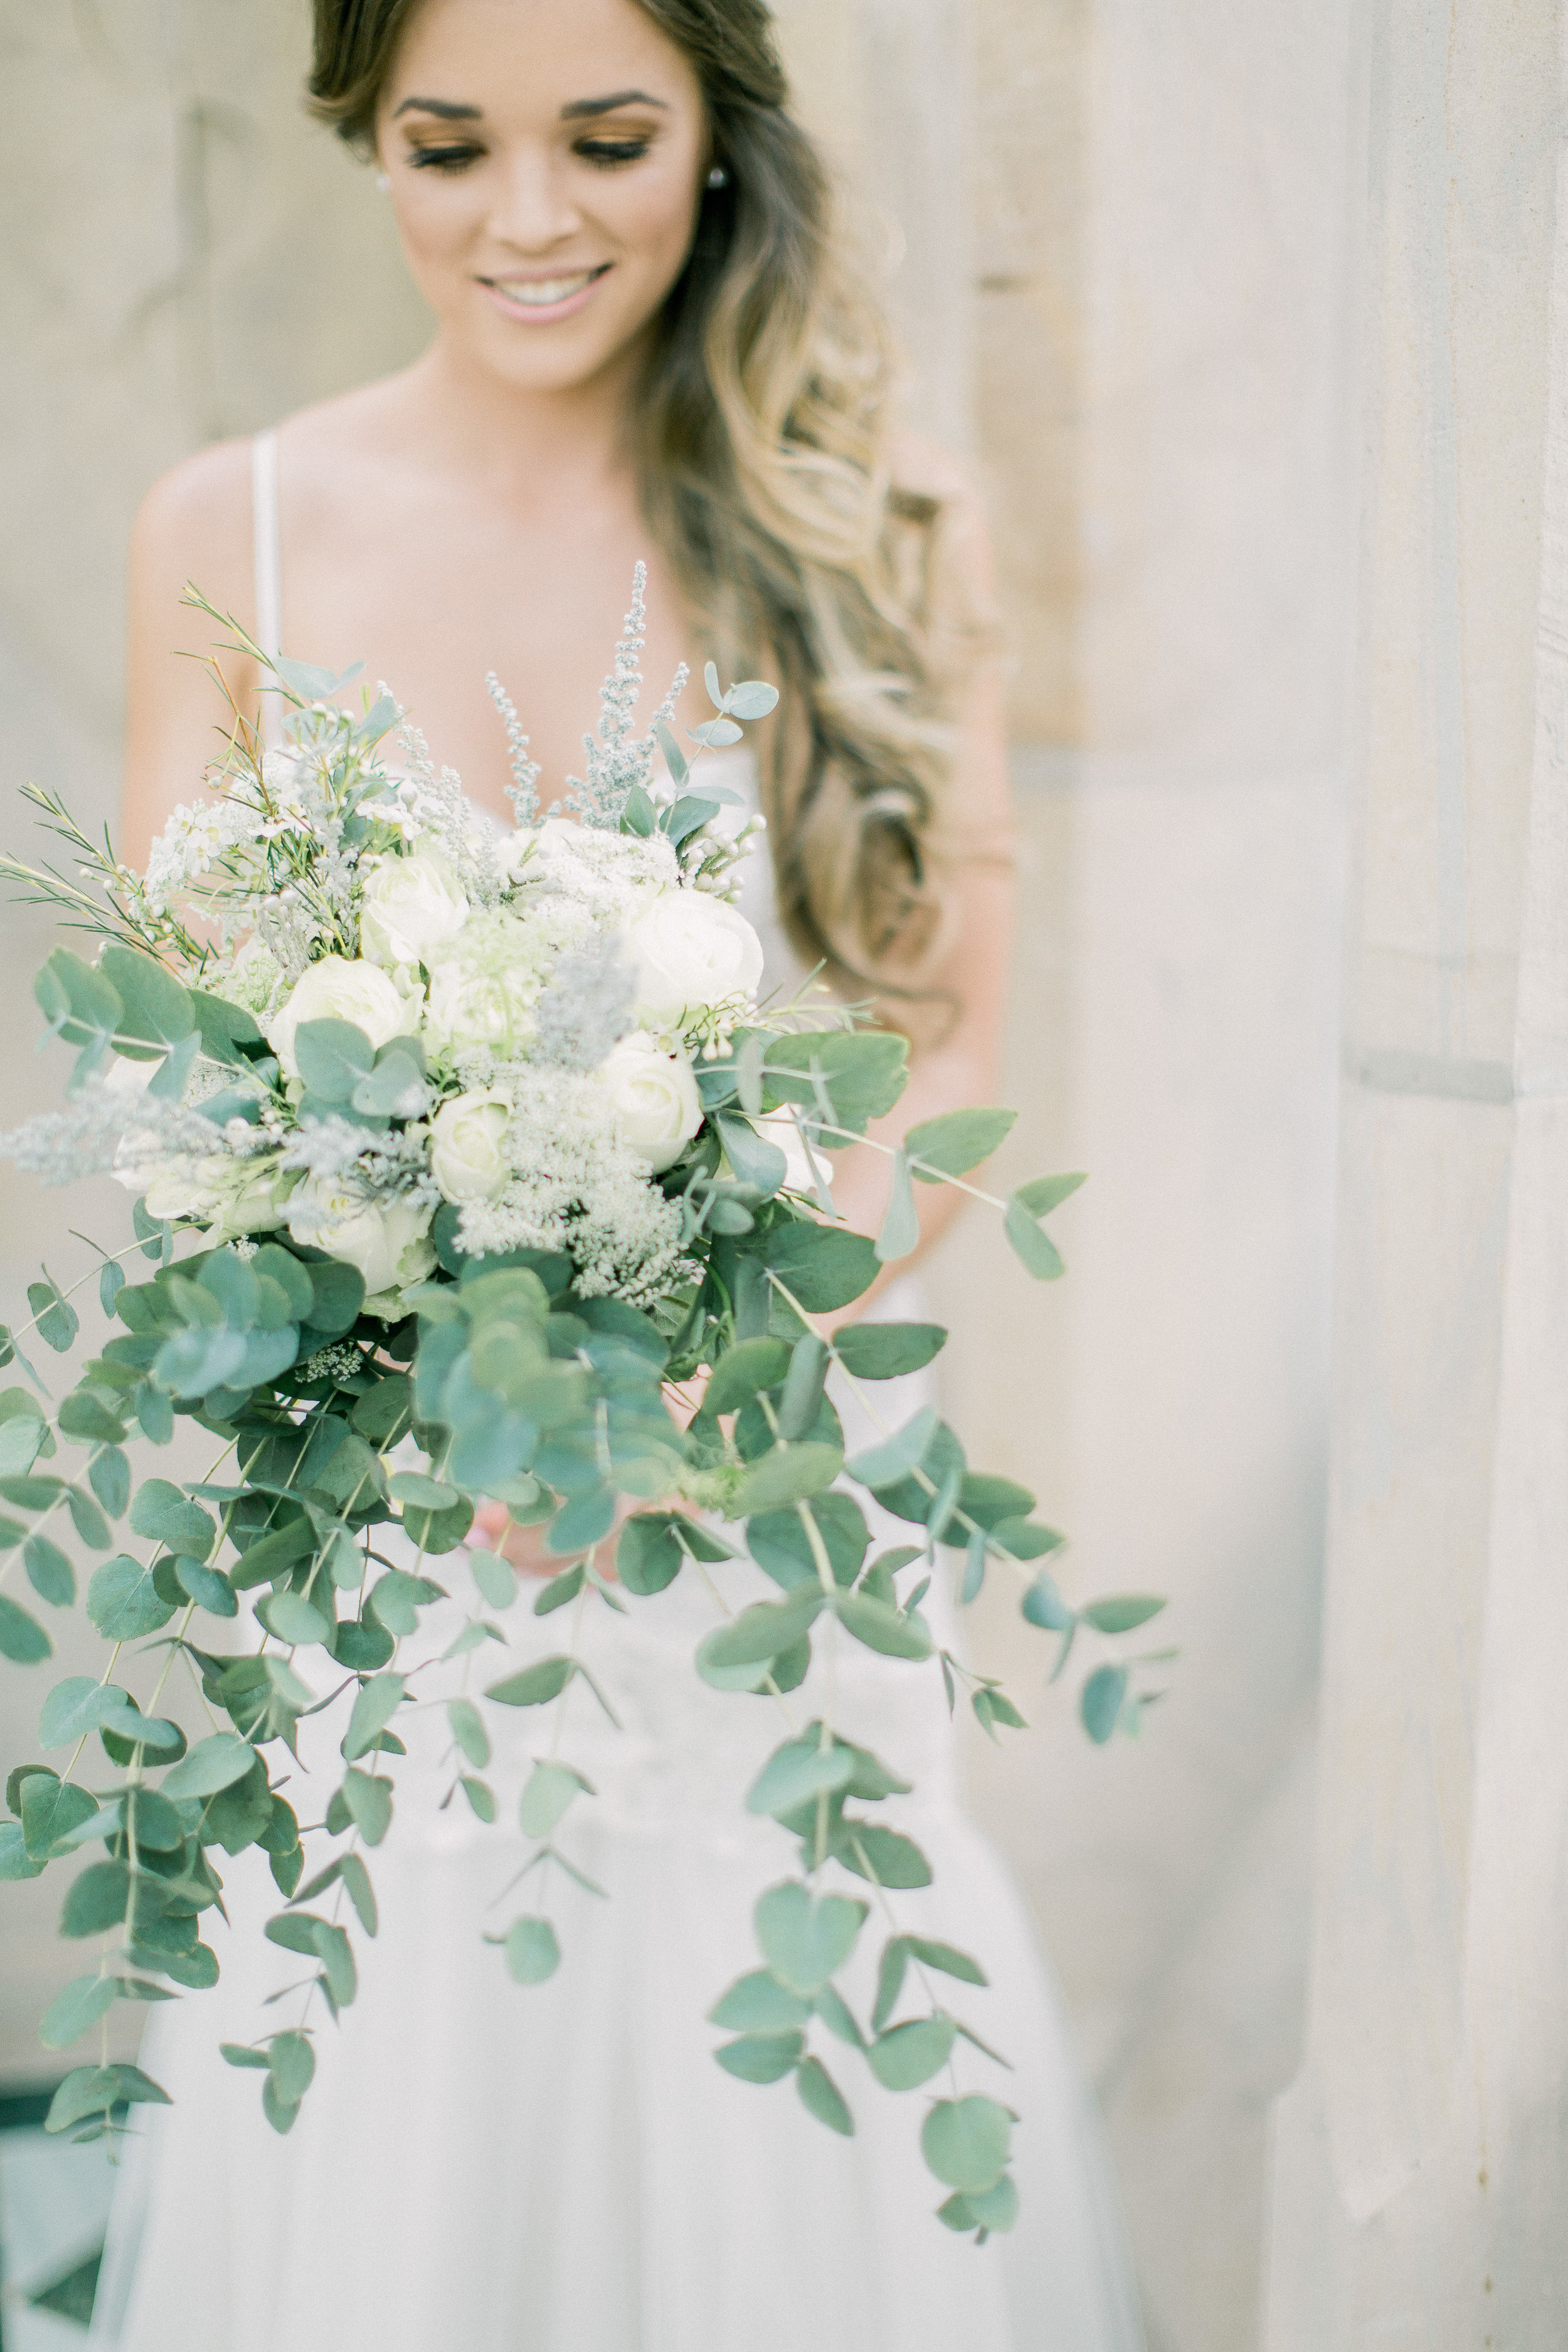 South africa wedding photographer clareece smit photography06.jpg